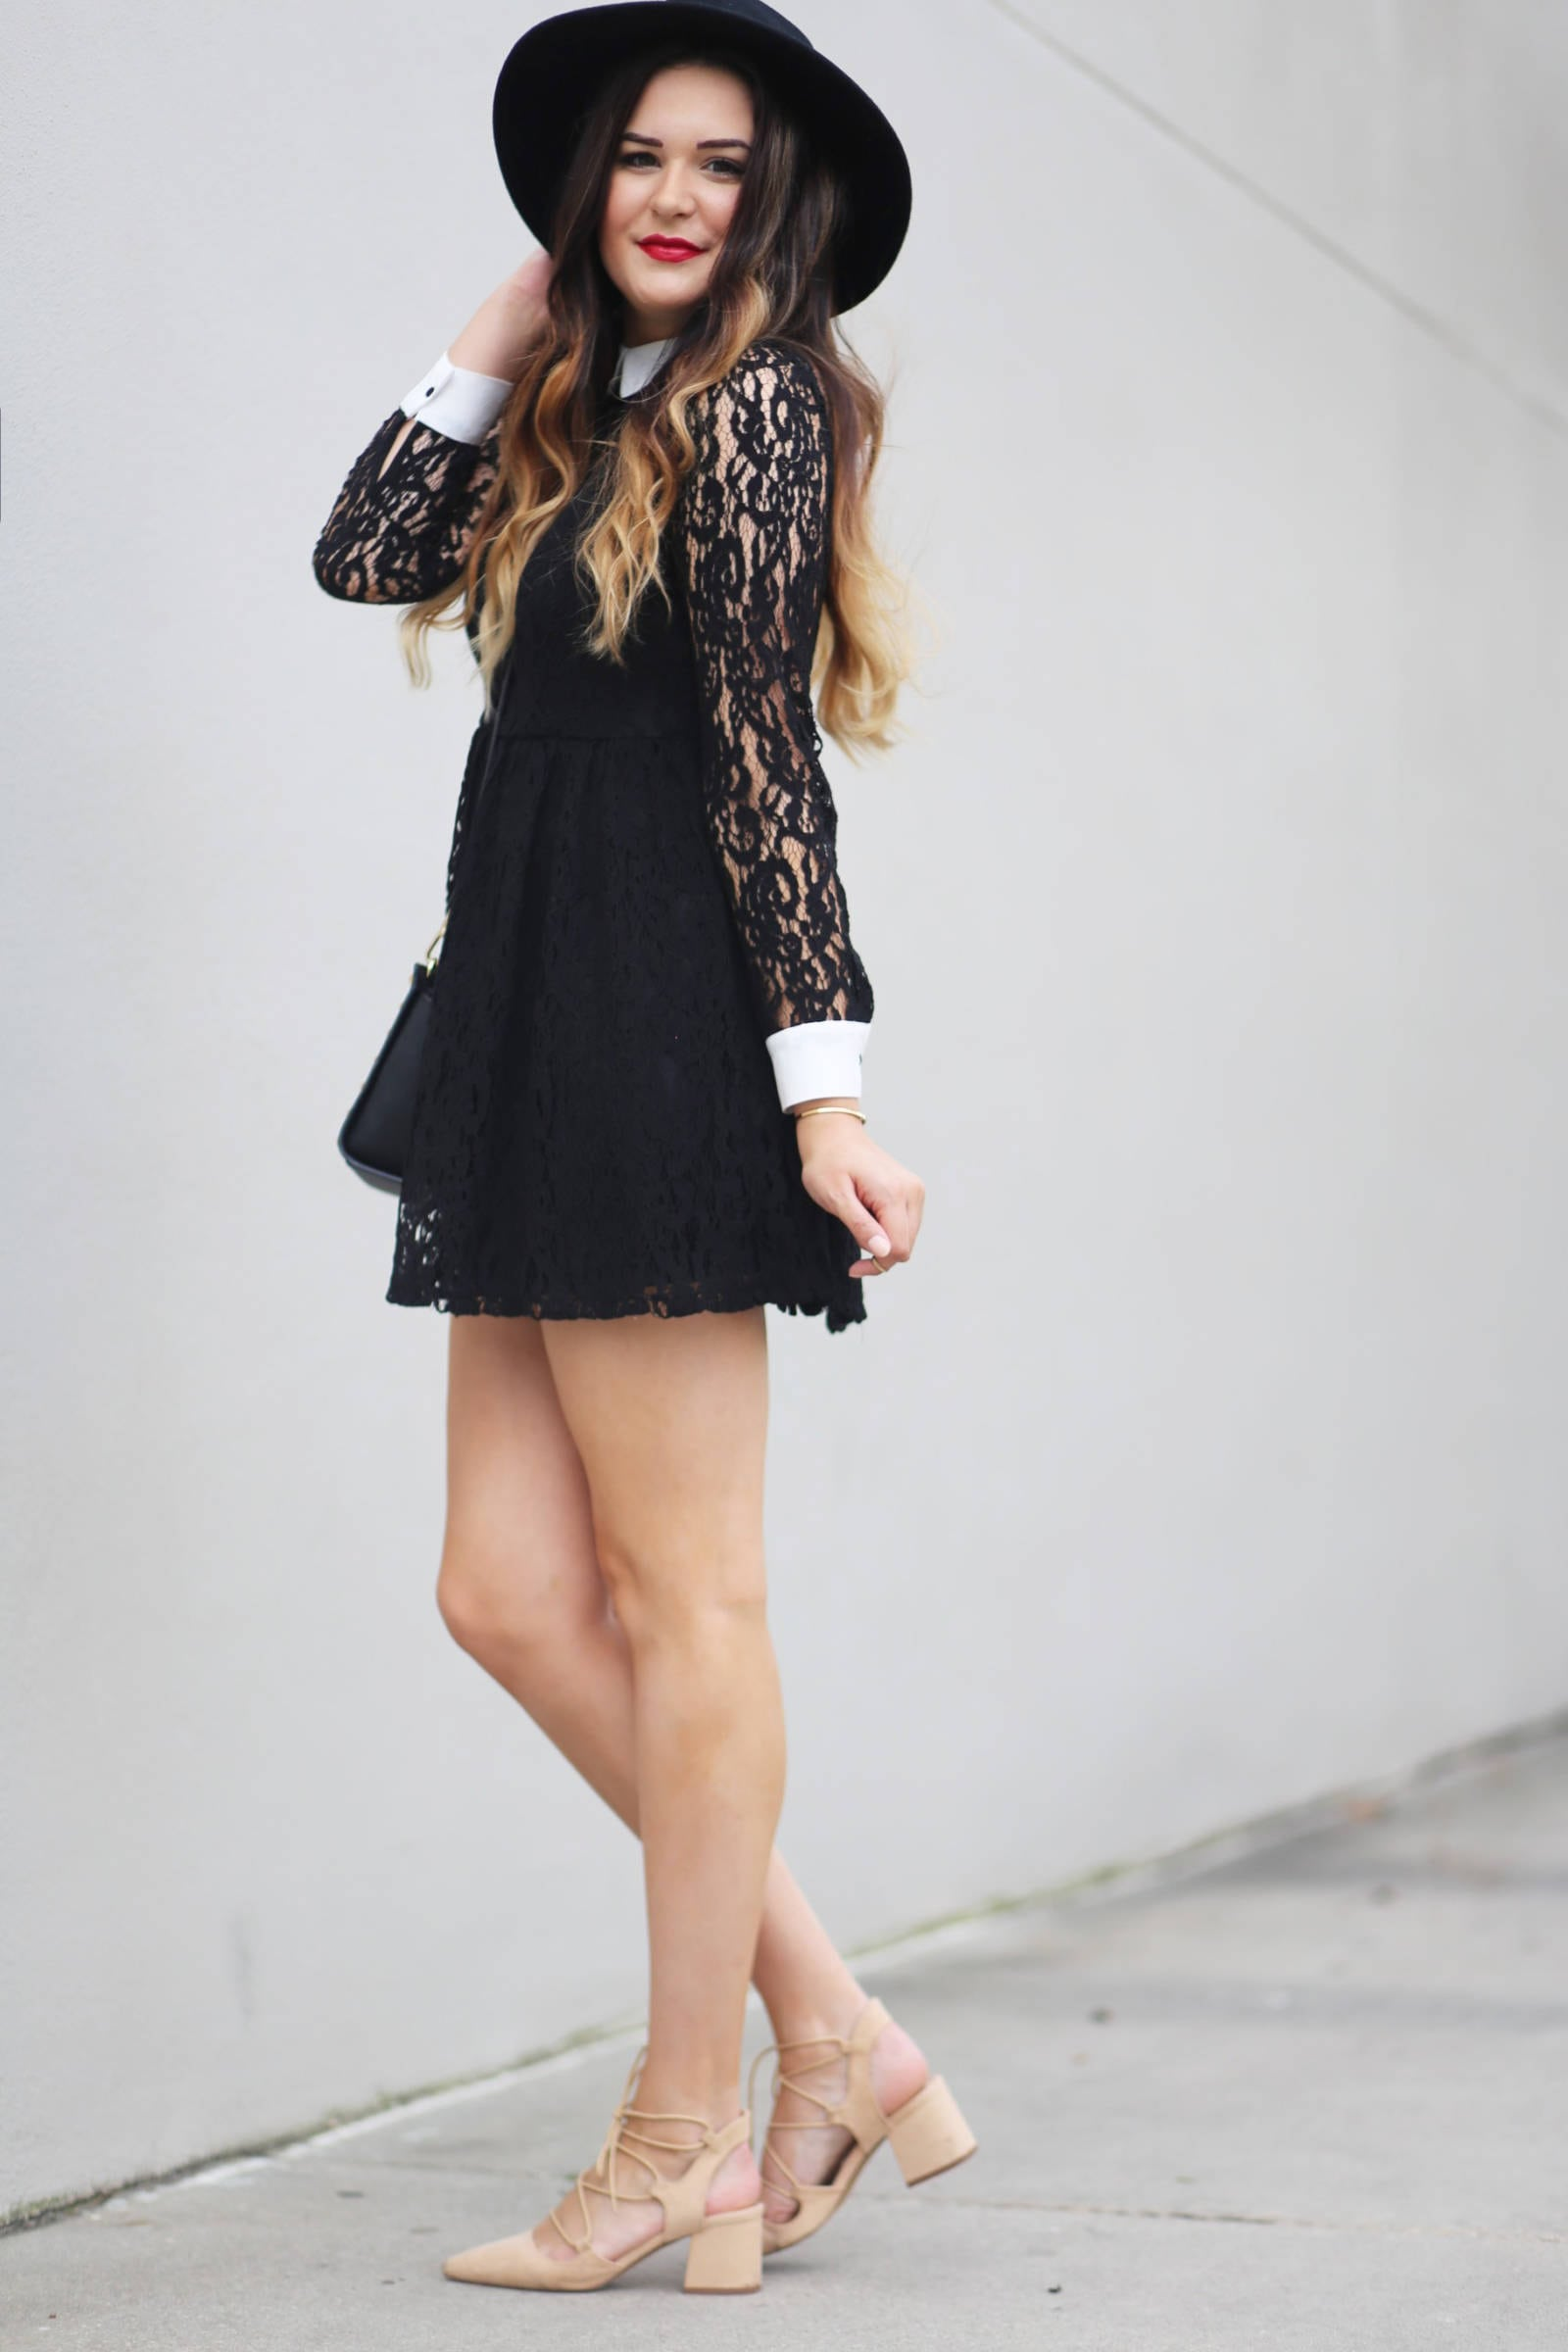 Fashion blogger Mash Elle styles a black lace dress and pink lace up shoes from Forever 21